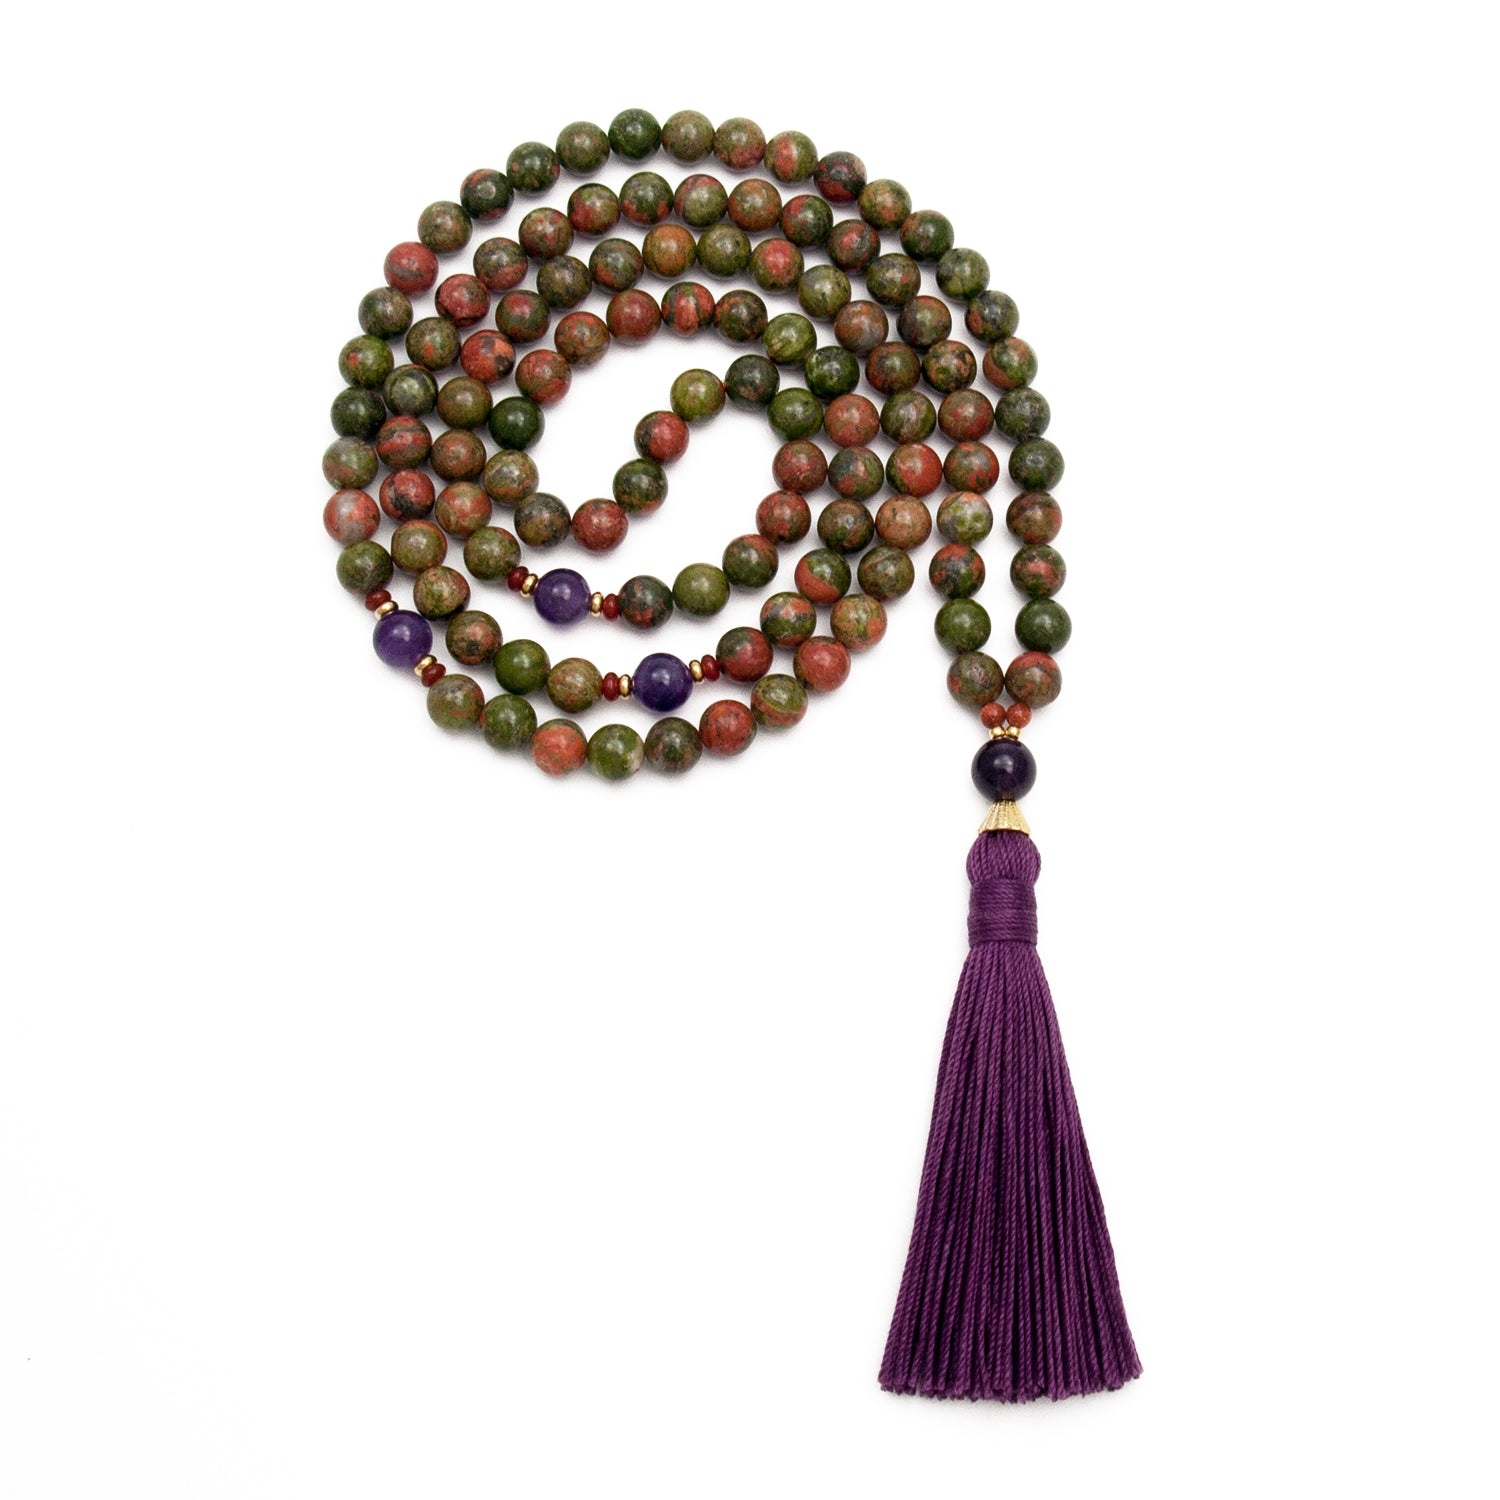 Unakite & Amethyst Mala Beads Handmade by Golden Lotus Mala